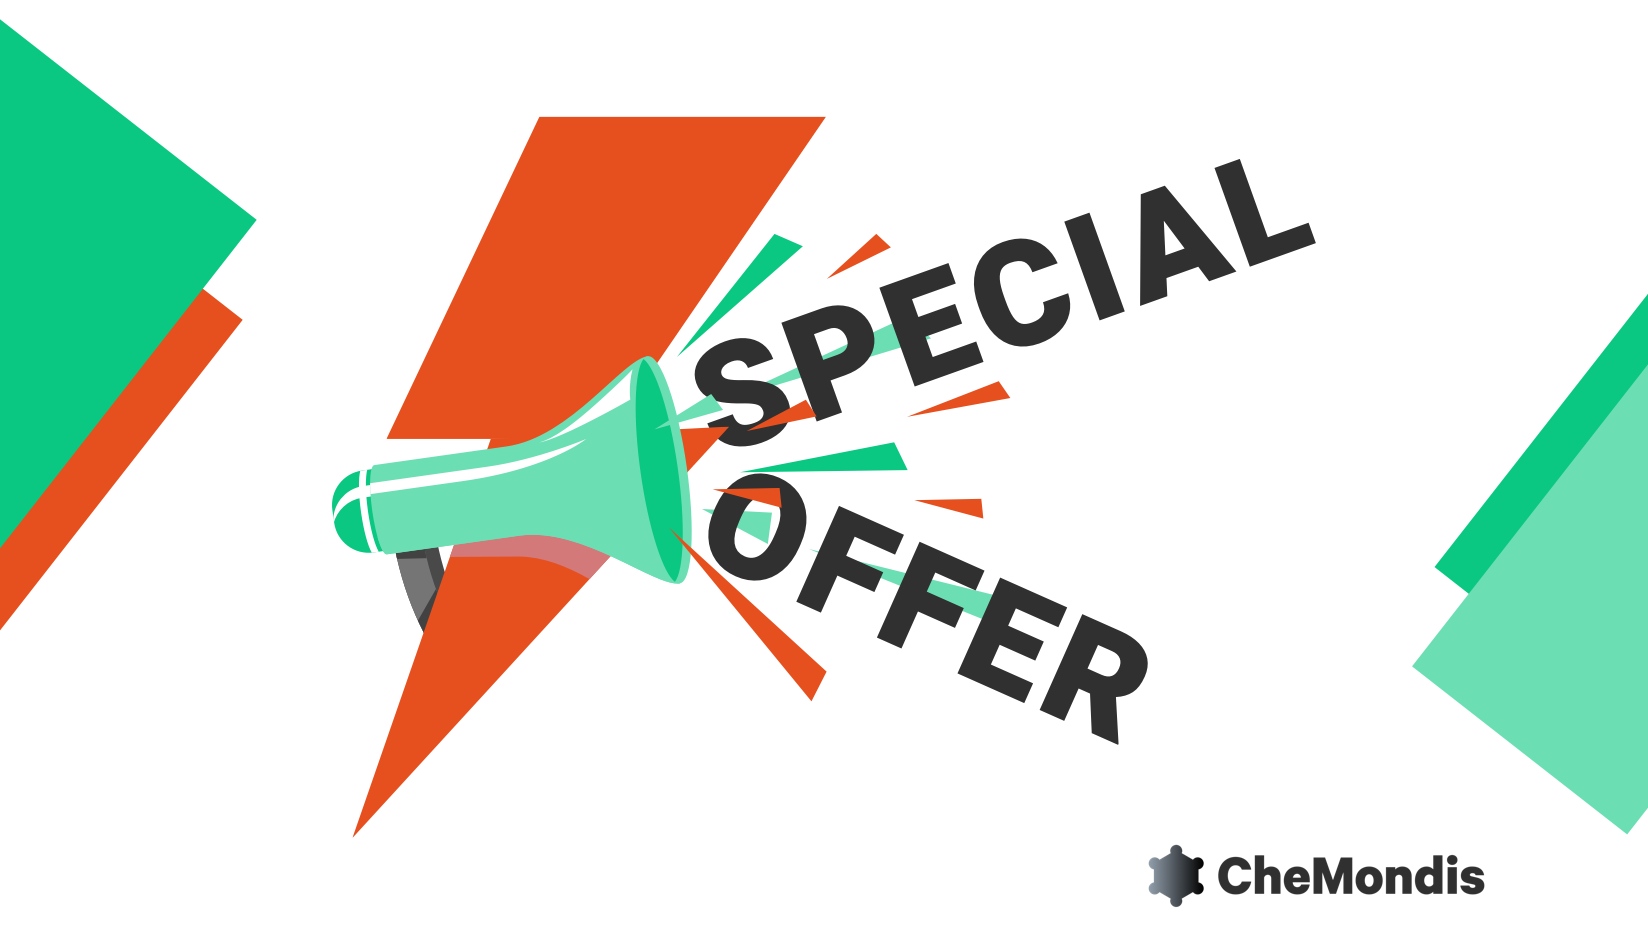 Send Special Offers to selected Buyers on CheMondis